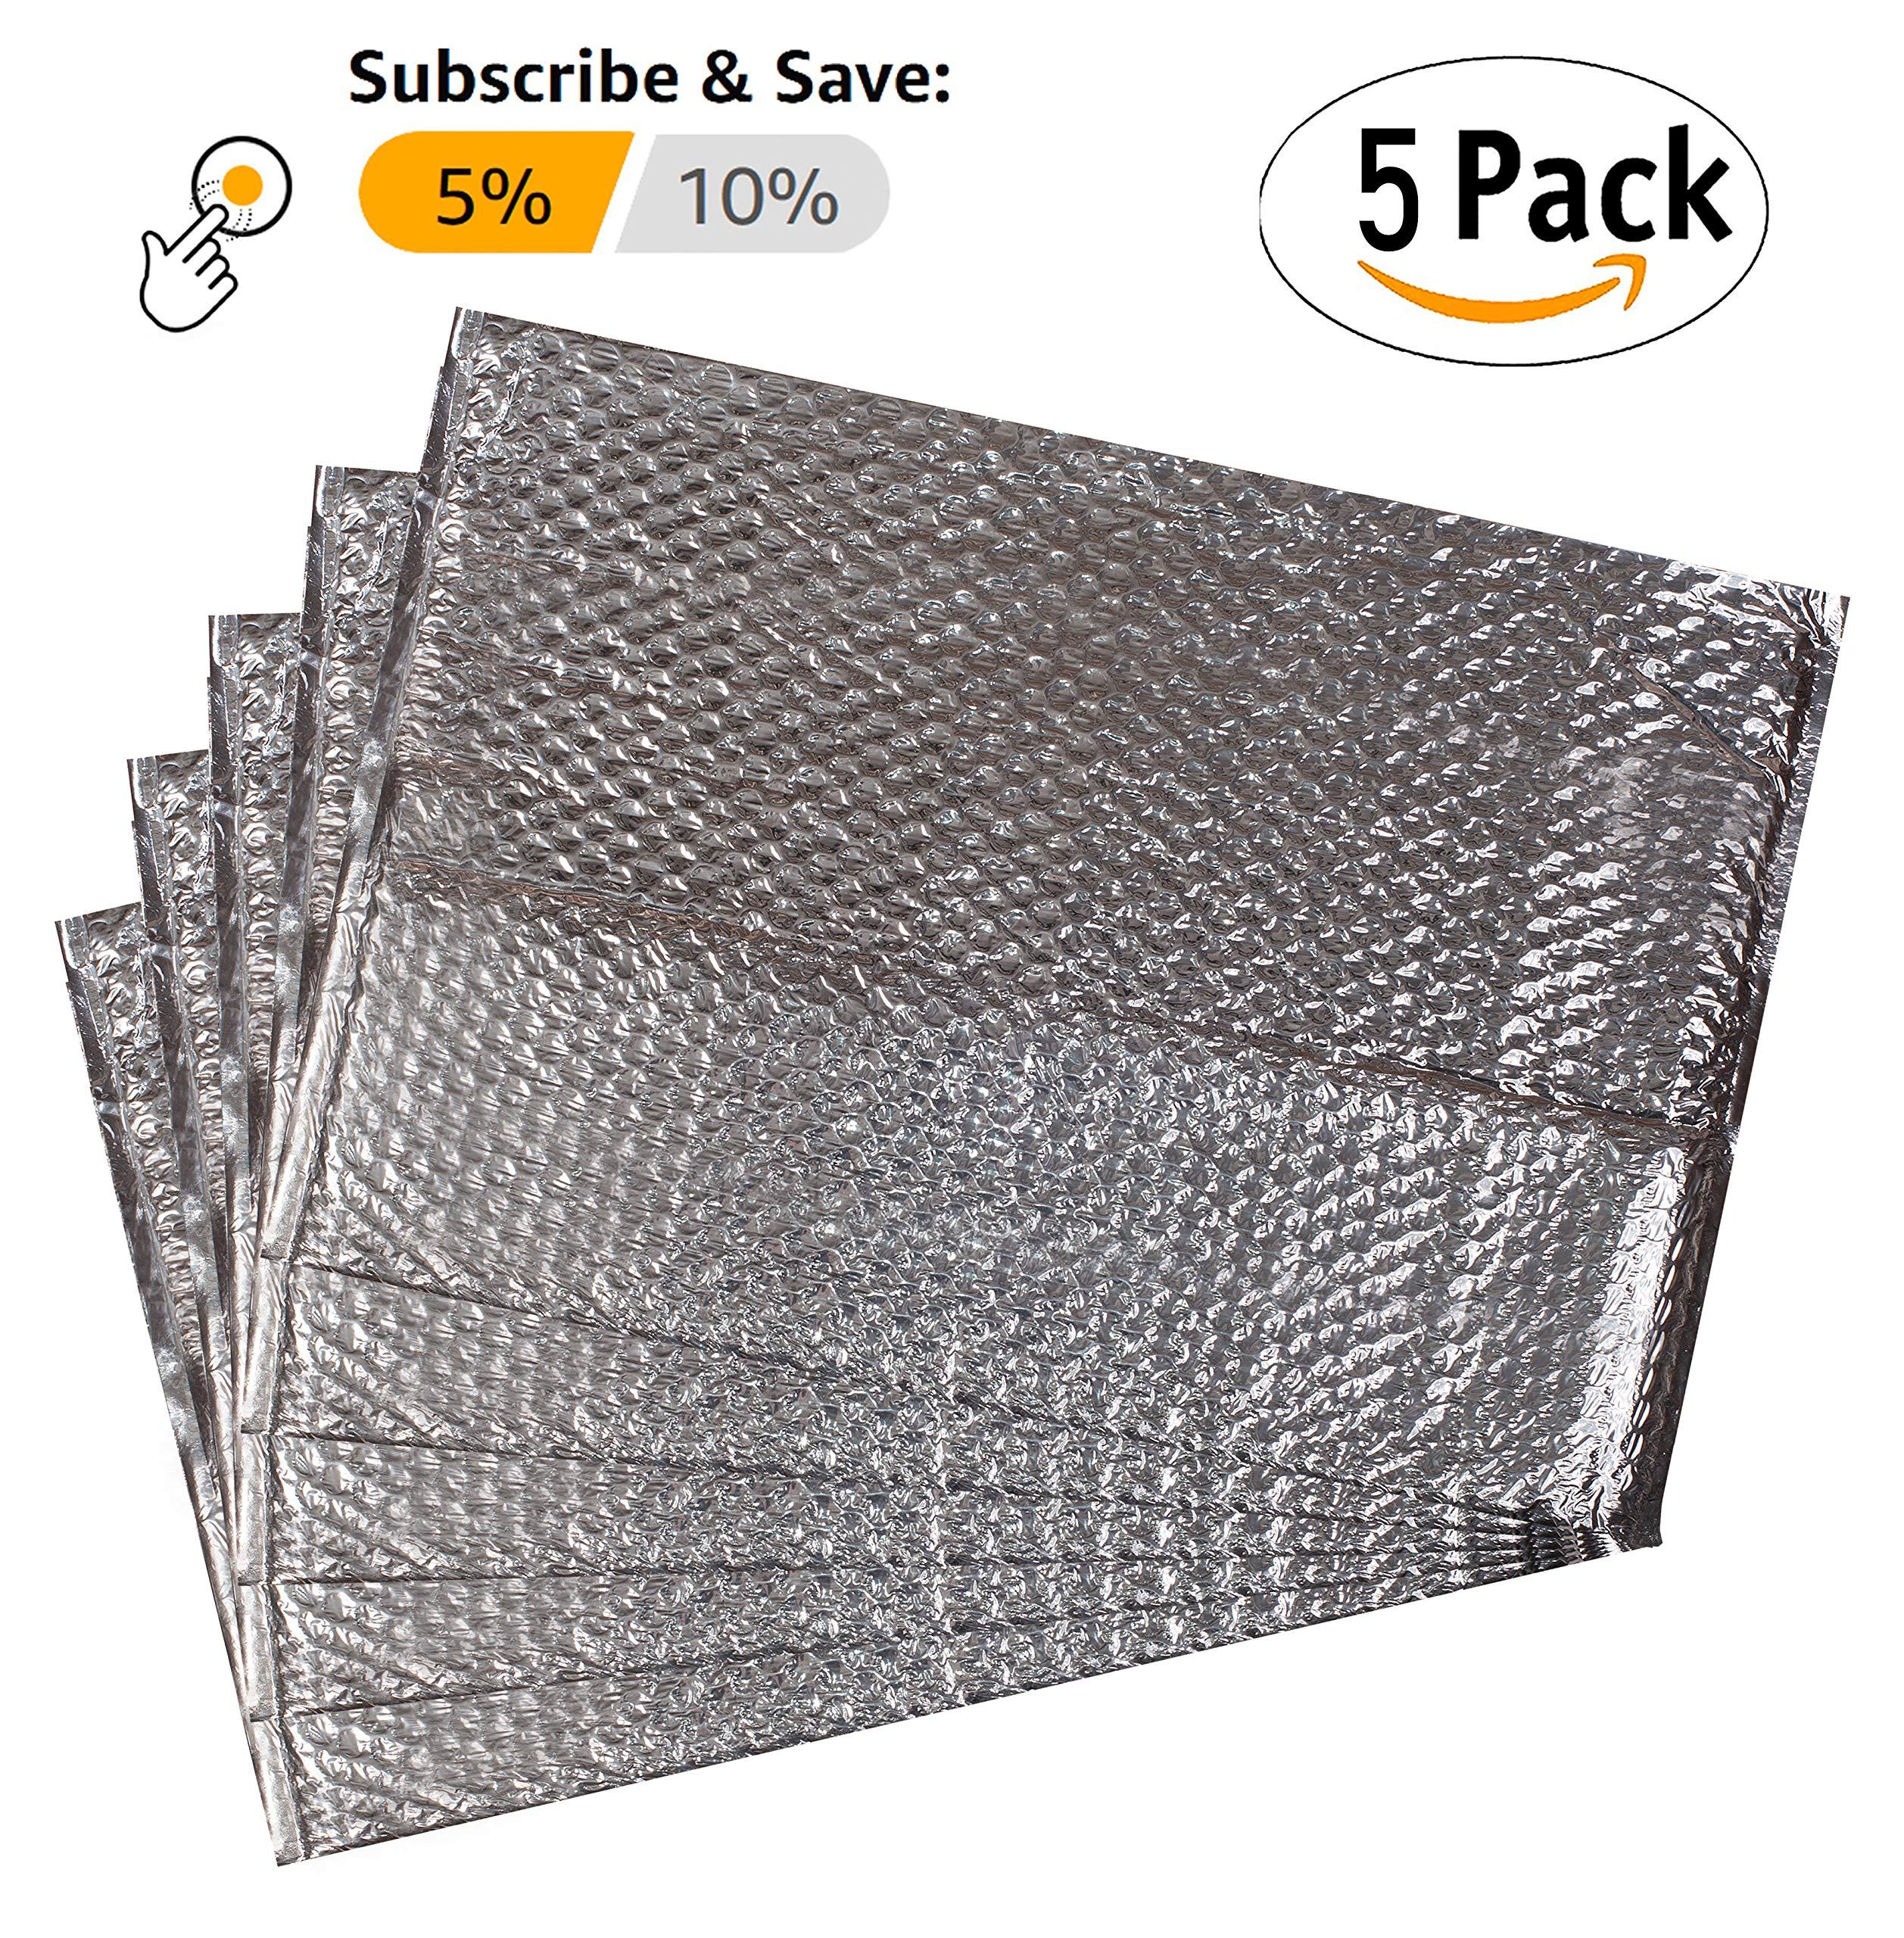 Pack of 5 Thermal Bubble Box Liners. Box Size 12 x 12 x 12. Gusseted Bottom Liners. Insulated Liners for Shipping Temperature Sensitive Products. Leak Resistant. Wholesale Price. by ABC Pack & Supply (Image #3)